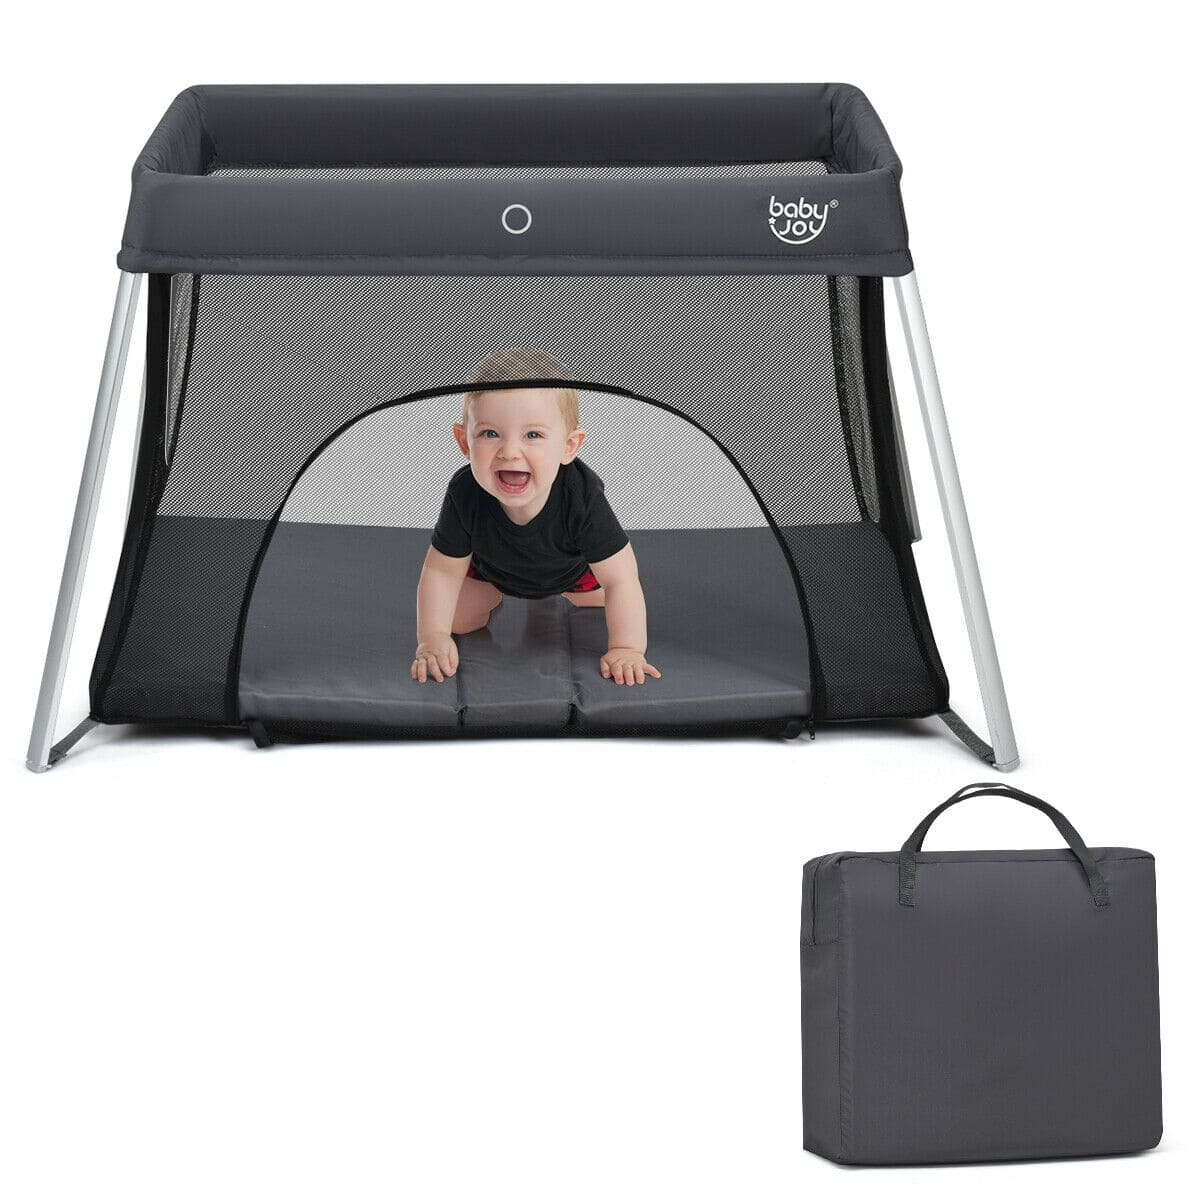 Lightweight Foldable Baby Playpen w/ Carry Bag - FREE SHIPPING